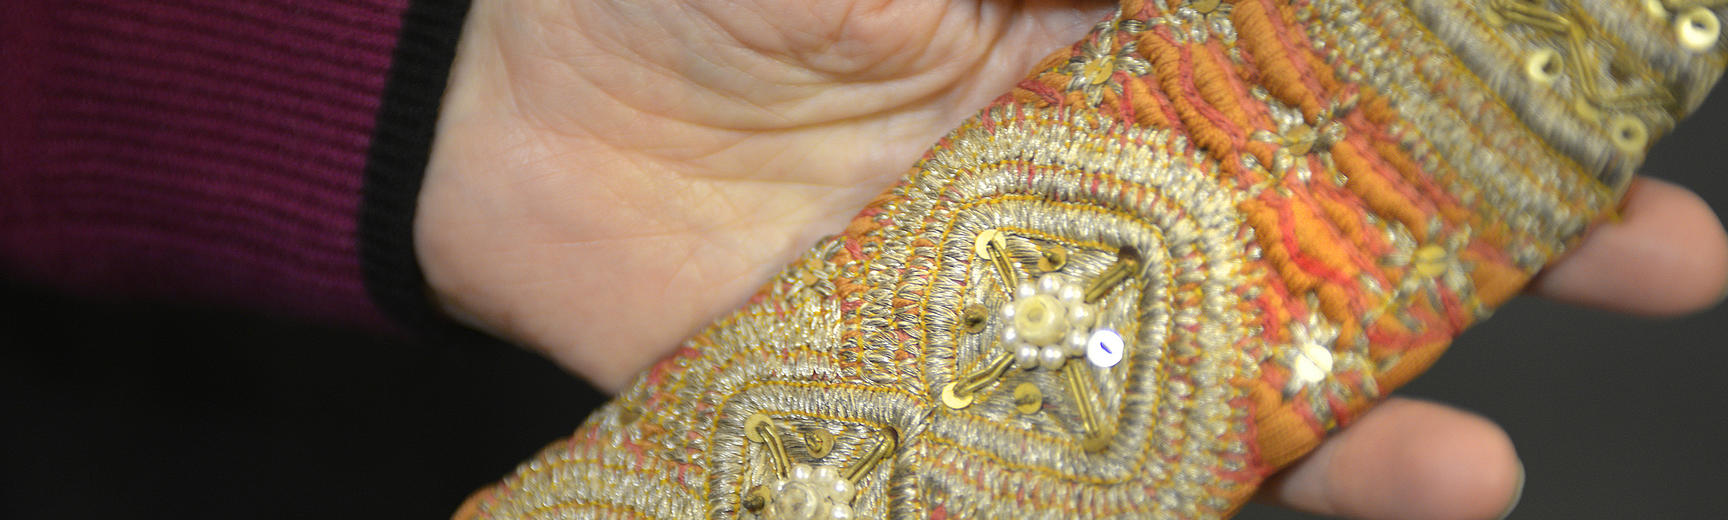 Hand holding a textile richly decorated with metallic threads, beads and sequins